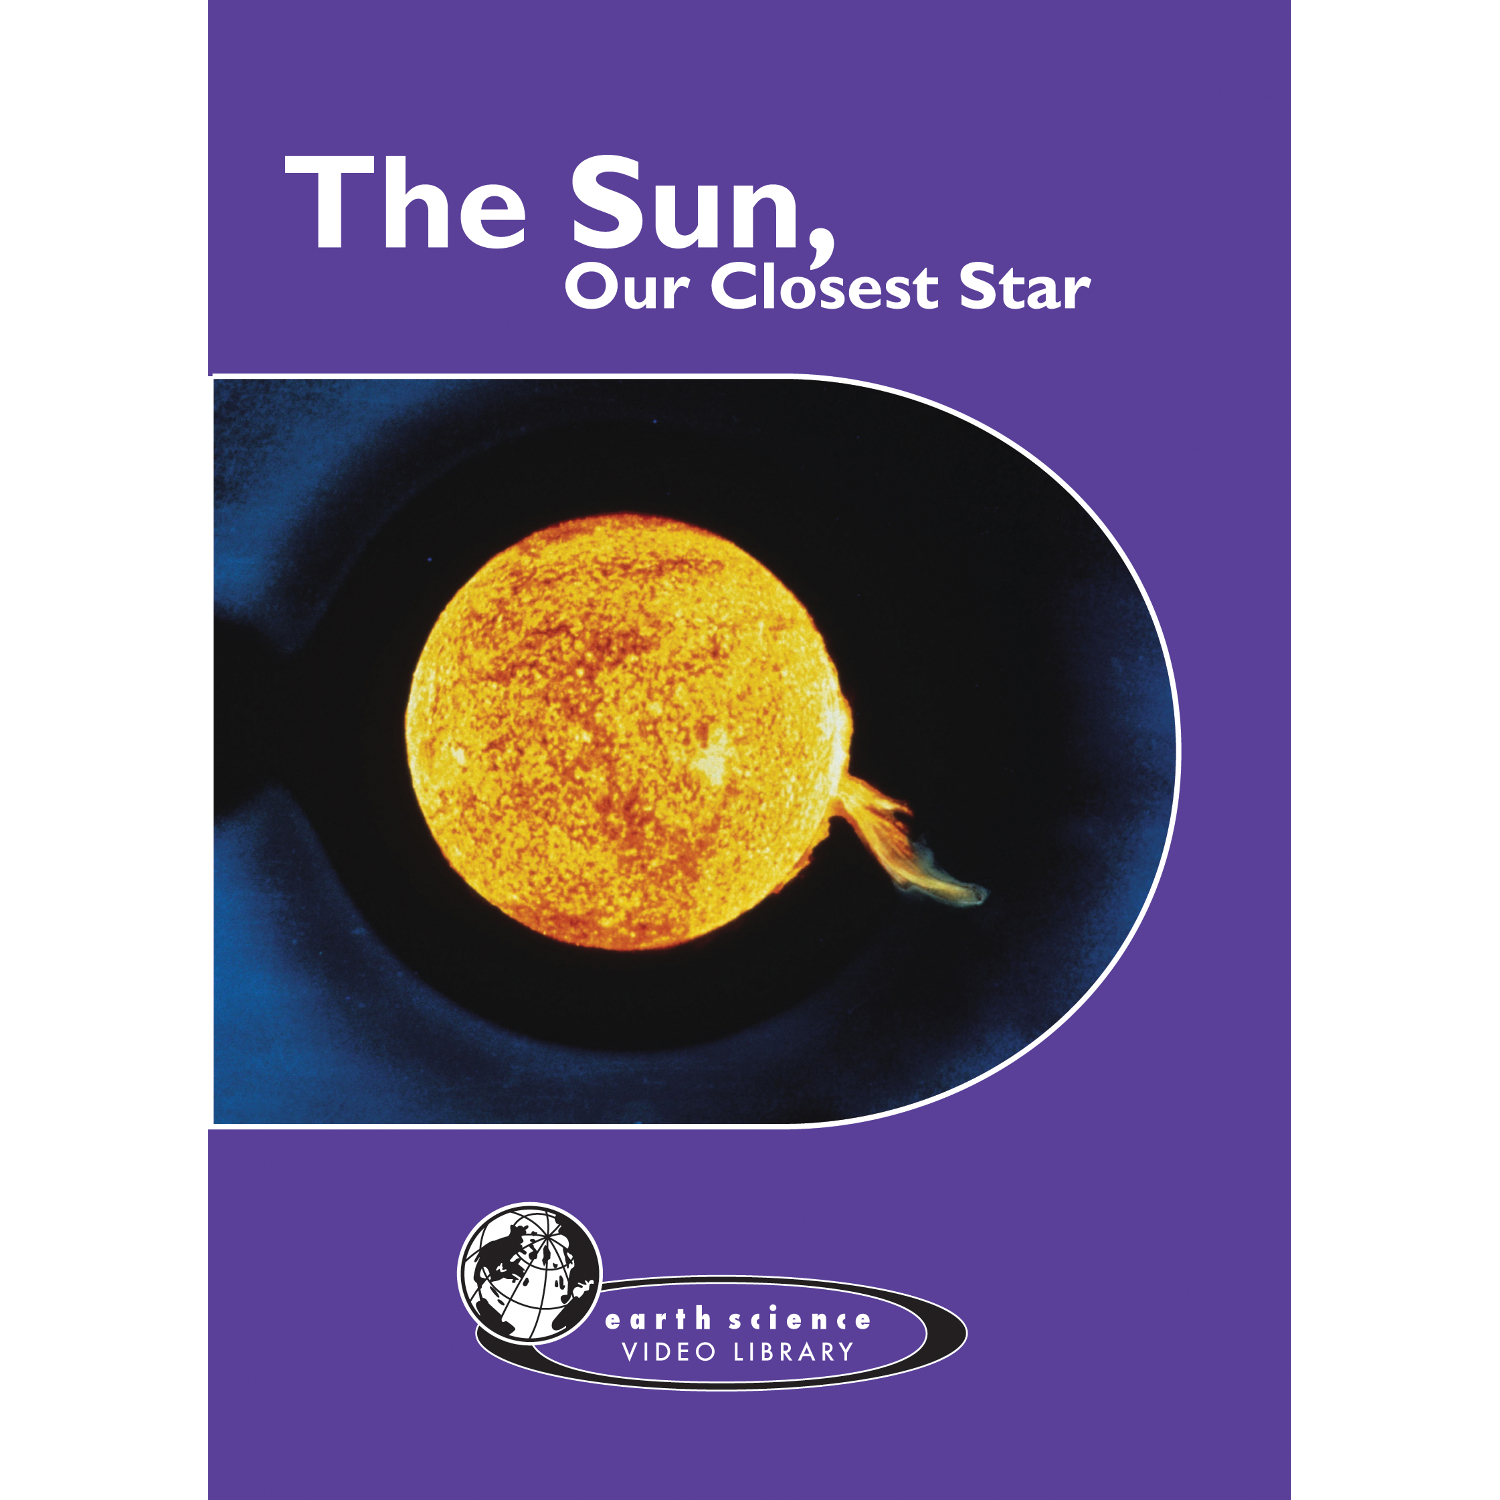 The Sun Our Closest Star Dvd